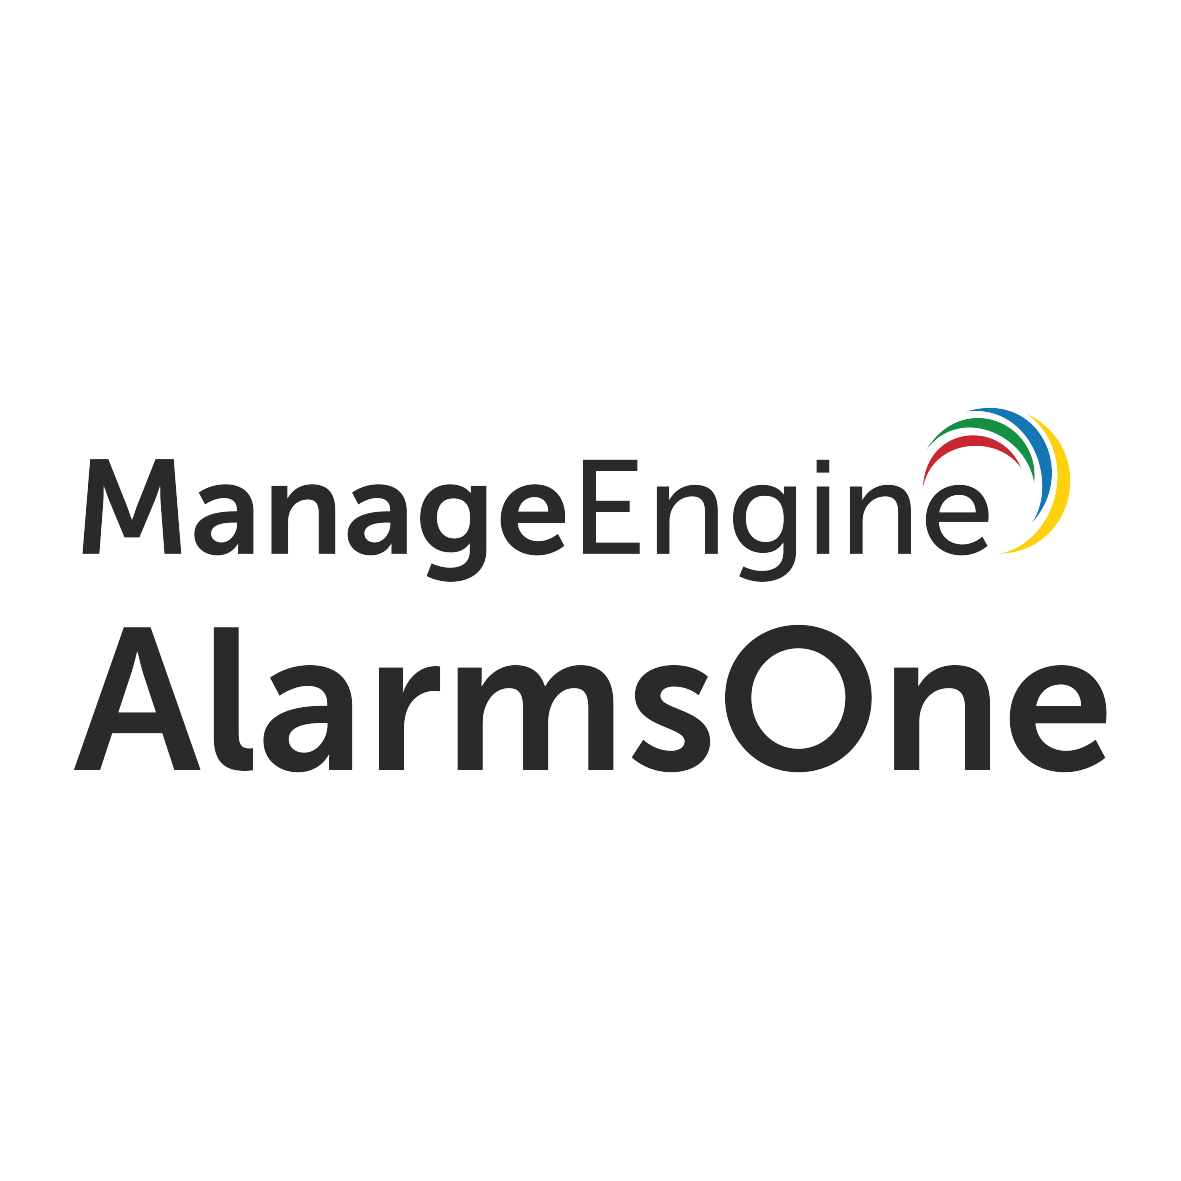 ManageEngine AlarmsOne Technographics